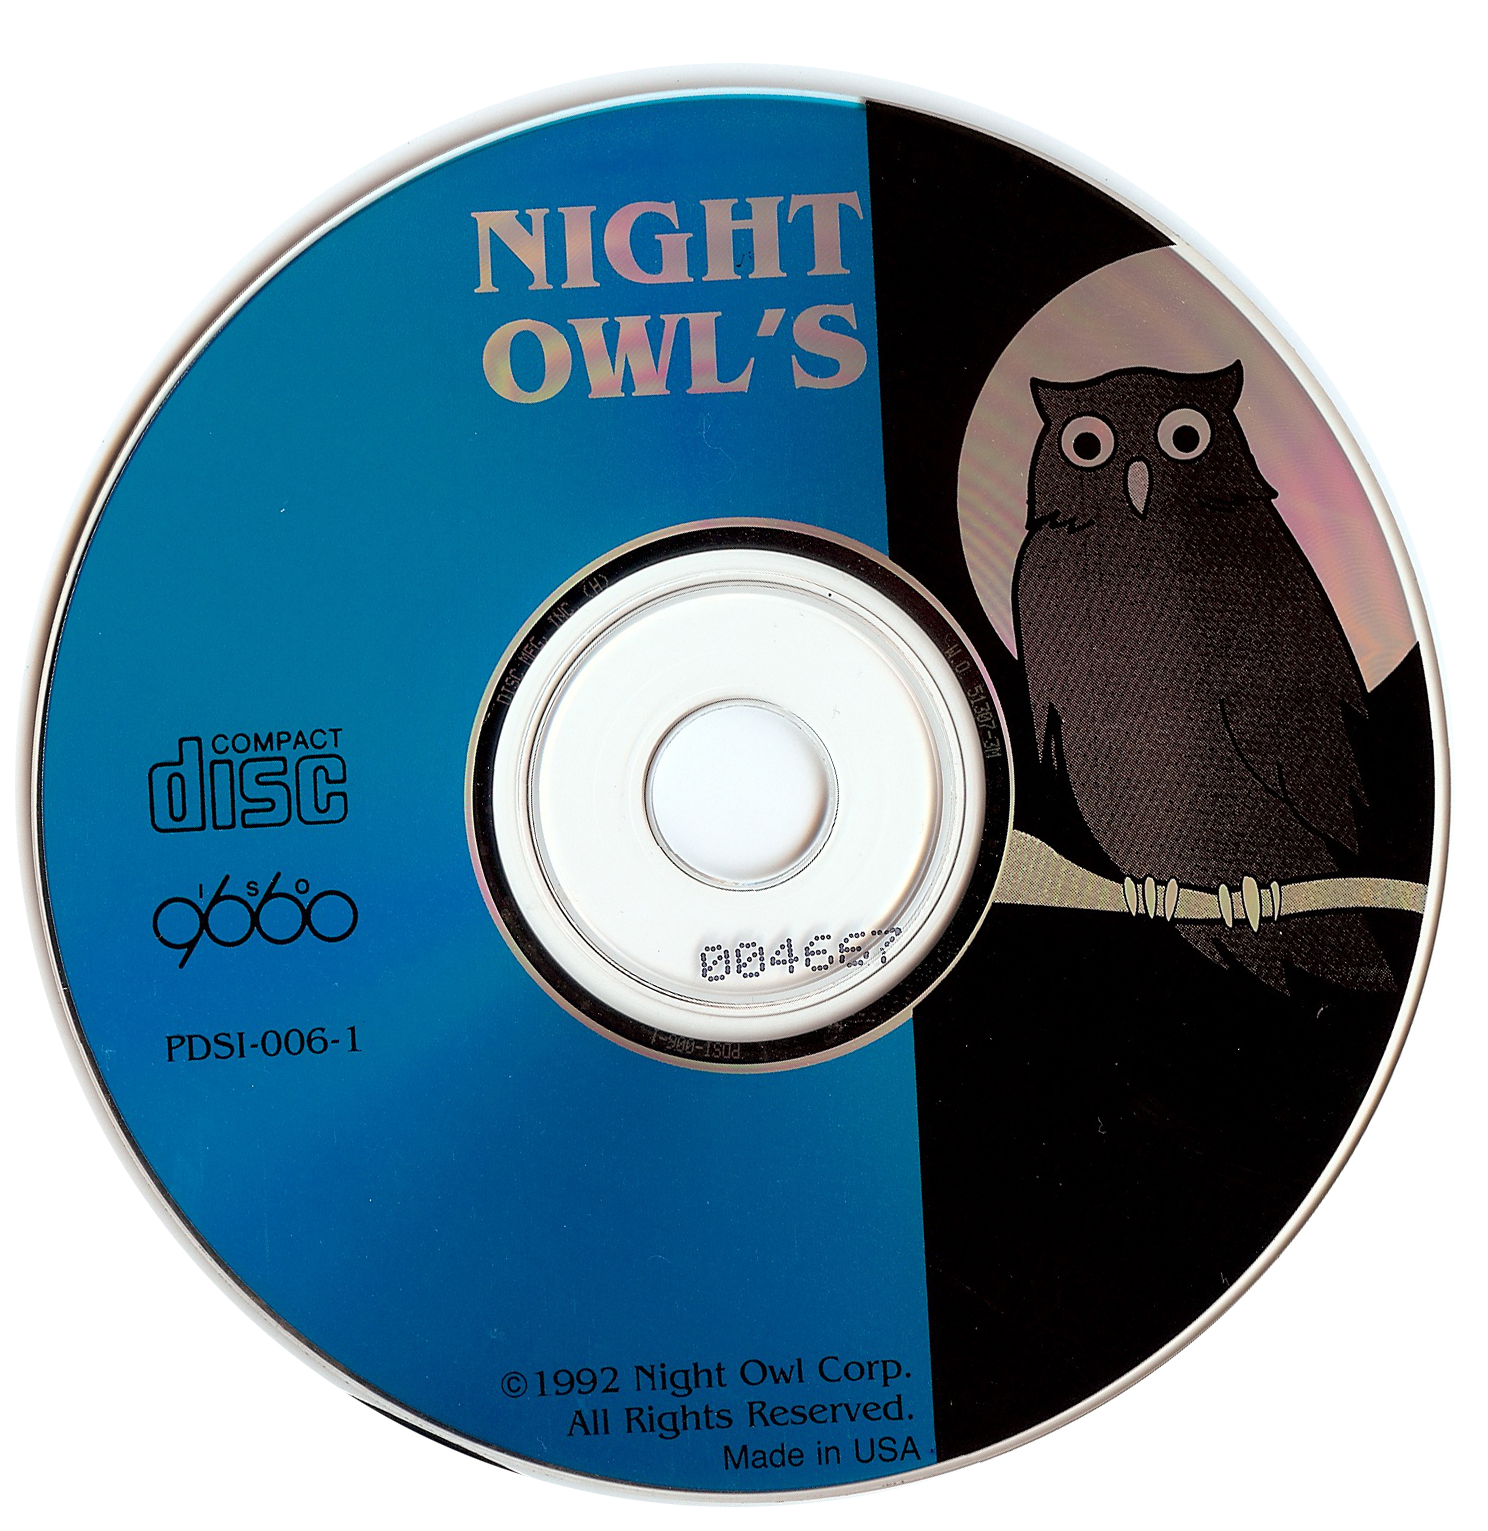 NightOwls.jpg